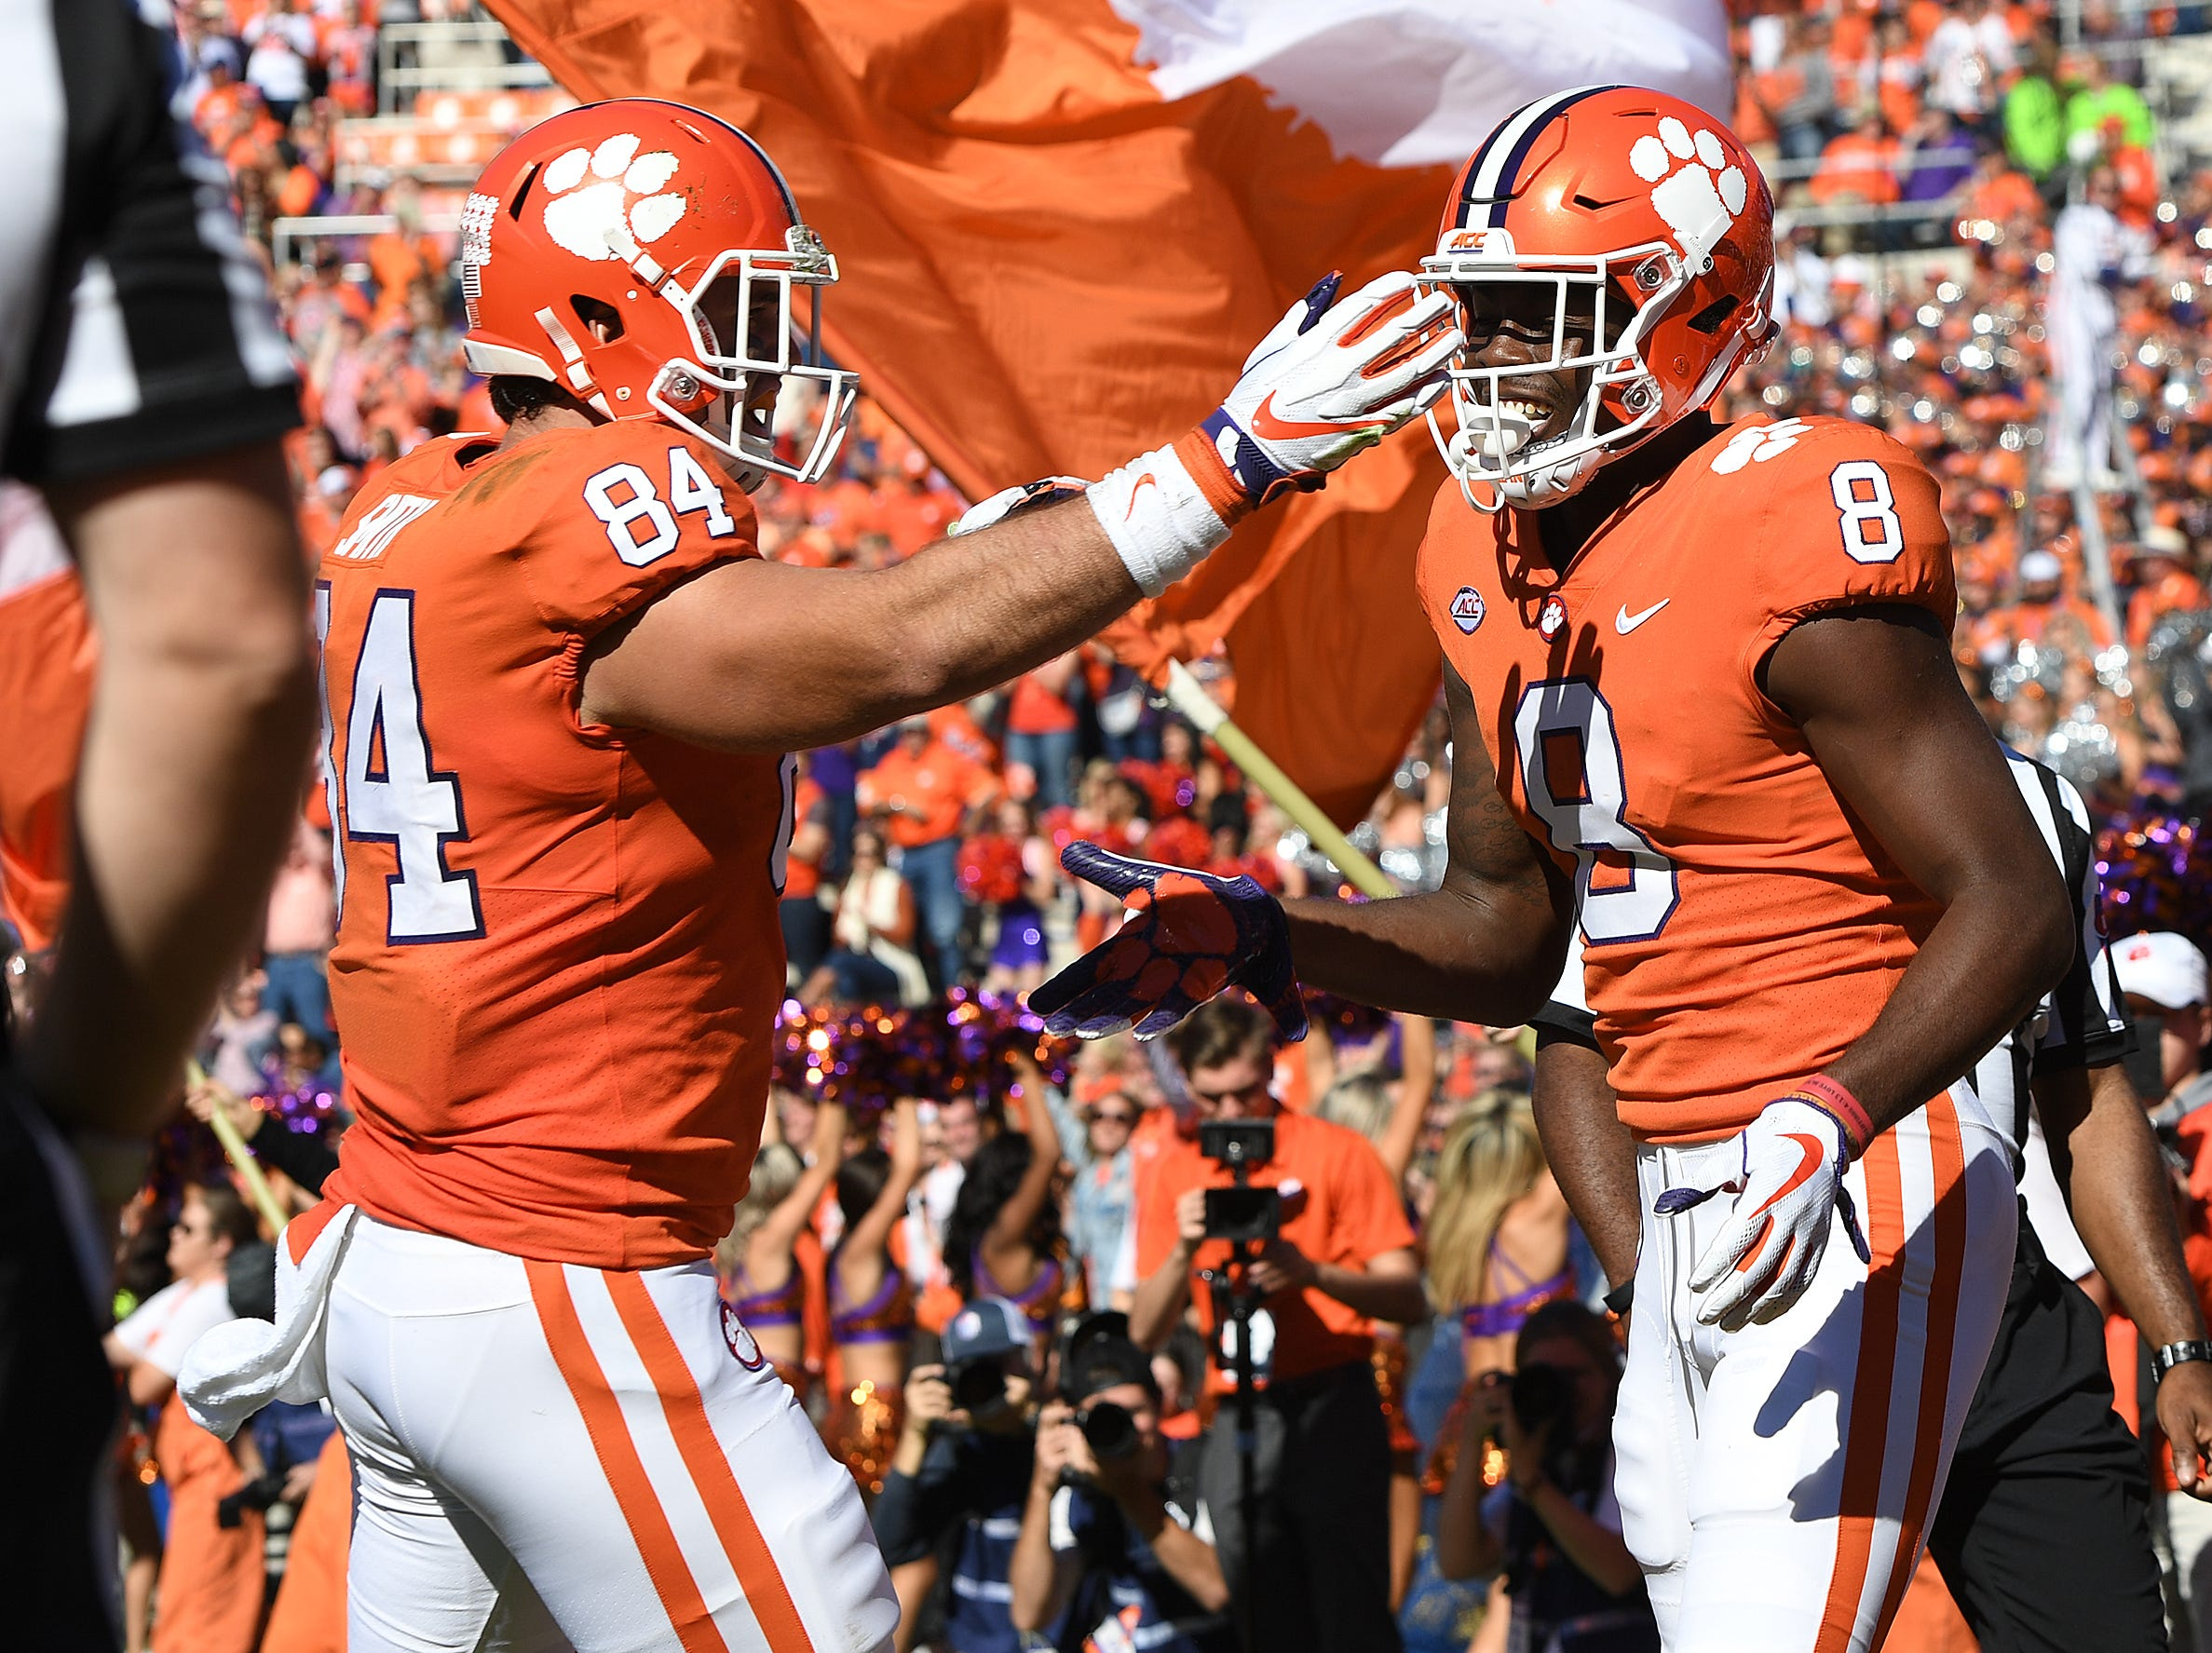 Clemson wide receiver Justyn Ross (8) celebrates with tight end Cannon Smith (84) after scoring against Louisville during the 3rd quarter Saturday, November 3, 2018 at Clemson's Memorial Stadium.